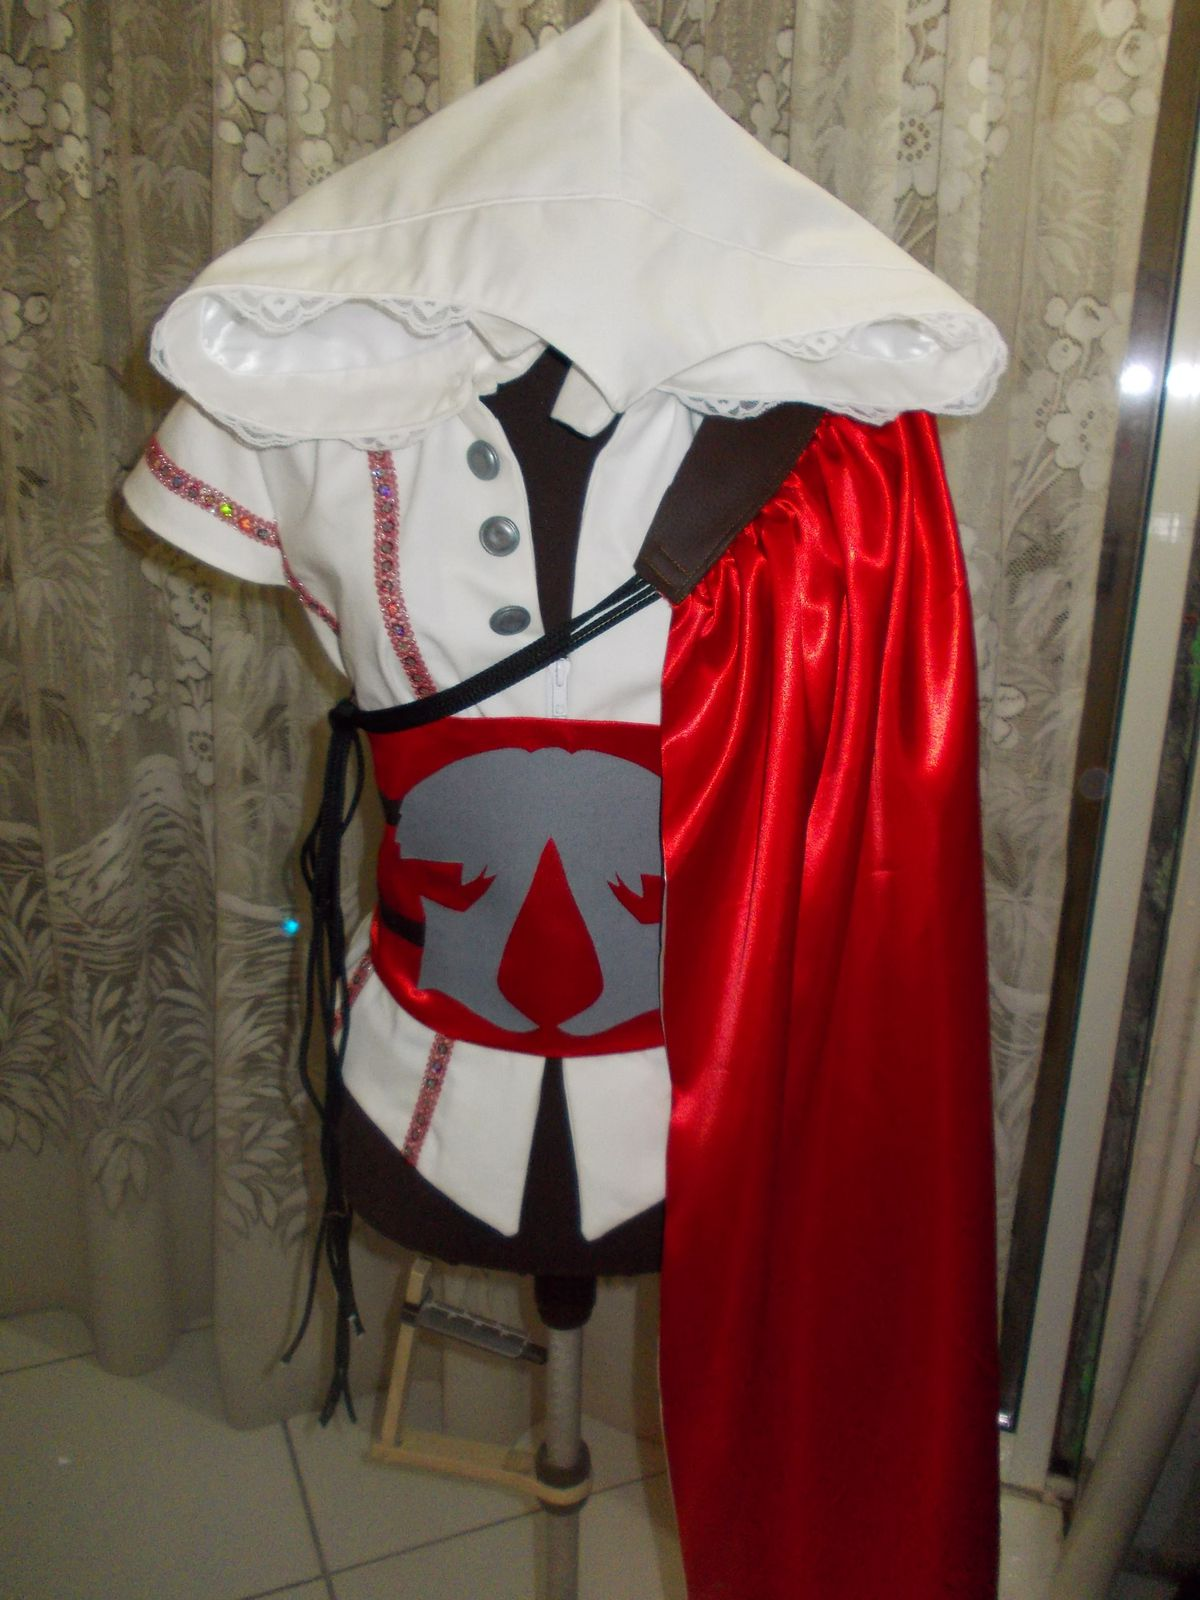 COSPLAY ASSASSIN'S CREED GIRL